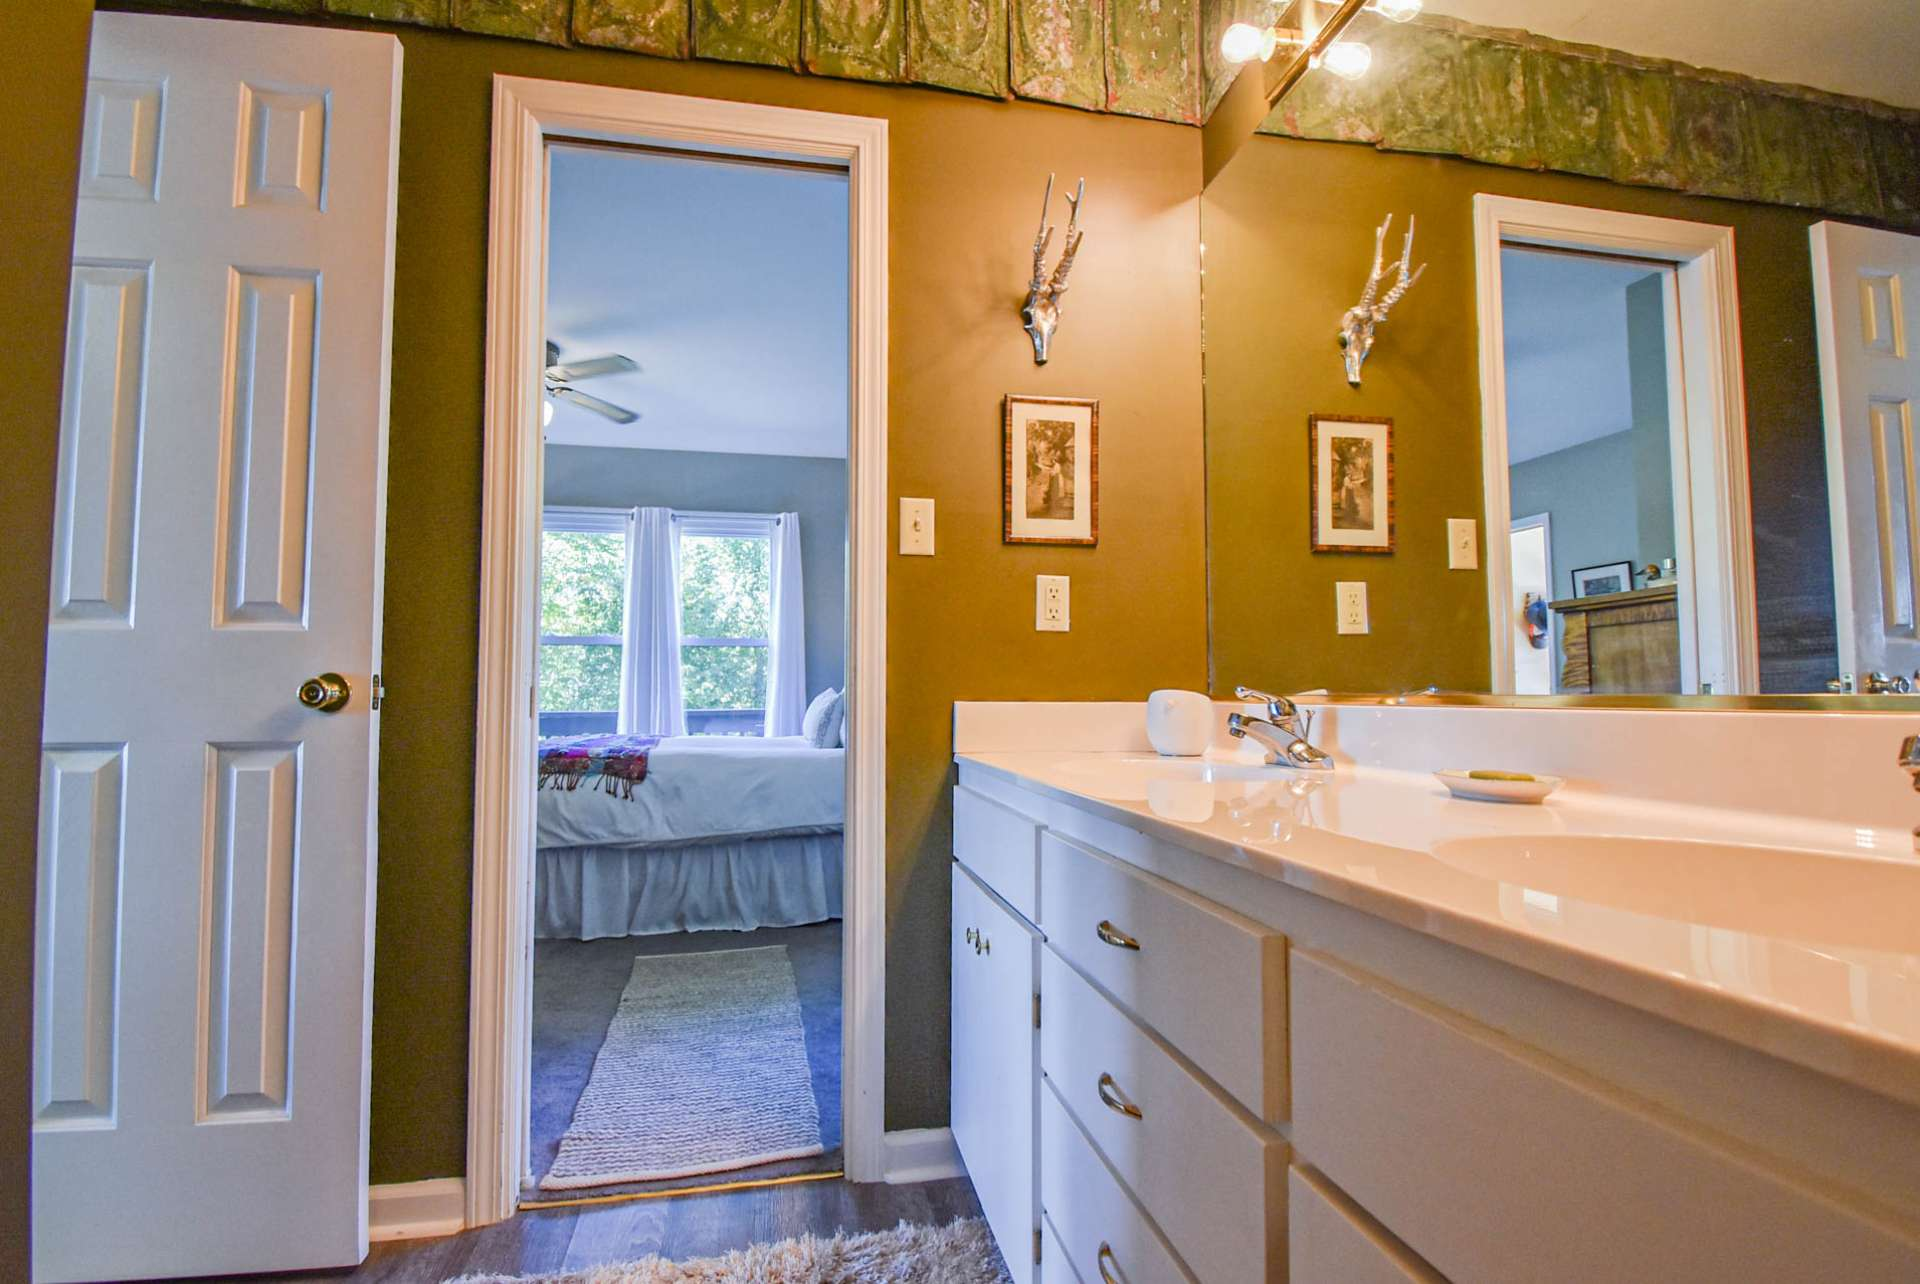 The main level features a full bath with double vanity and tub/shower combo and is accessed down the hall from the great room and from the main level bedroom creating a master suite option.